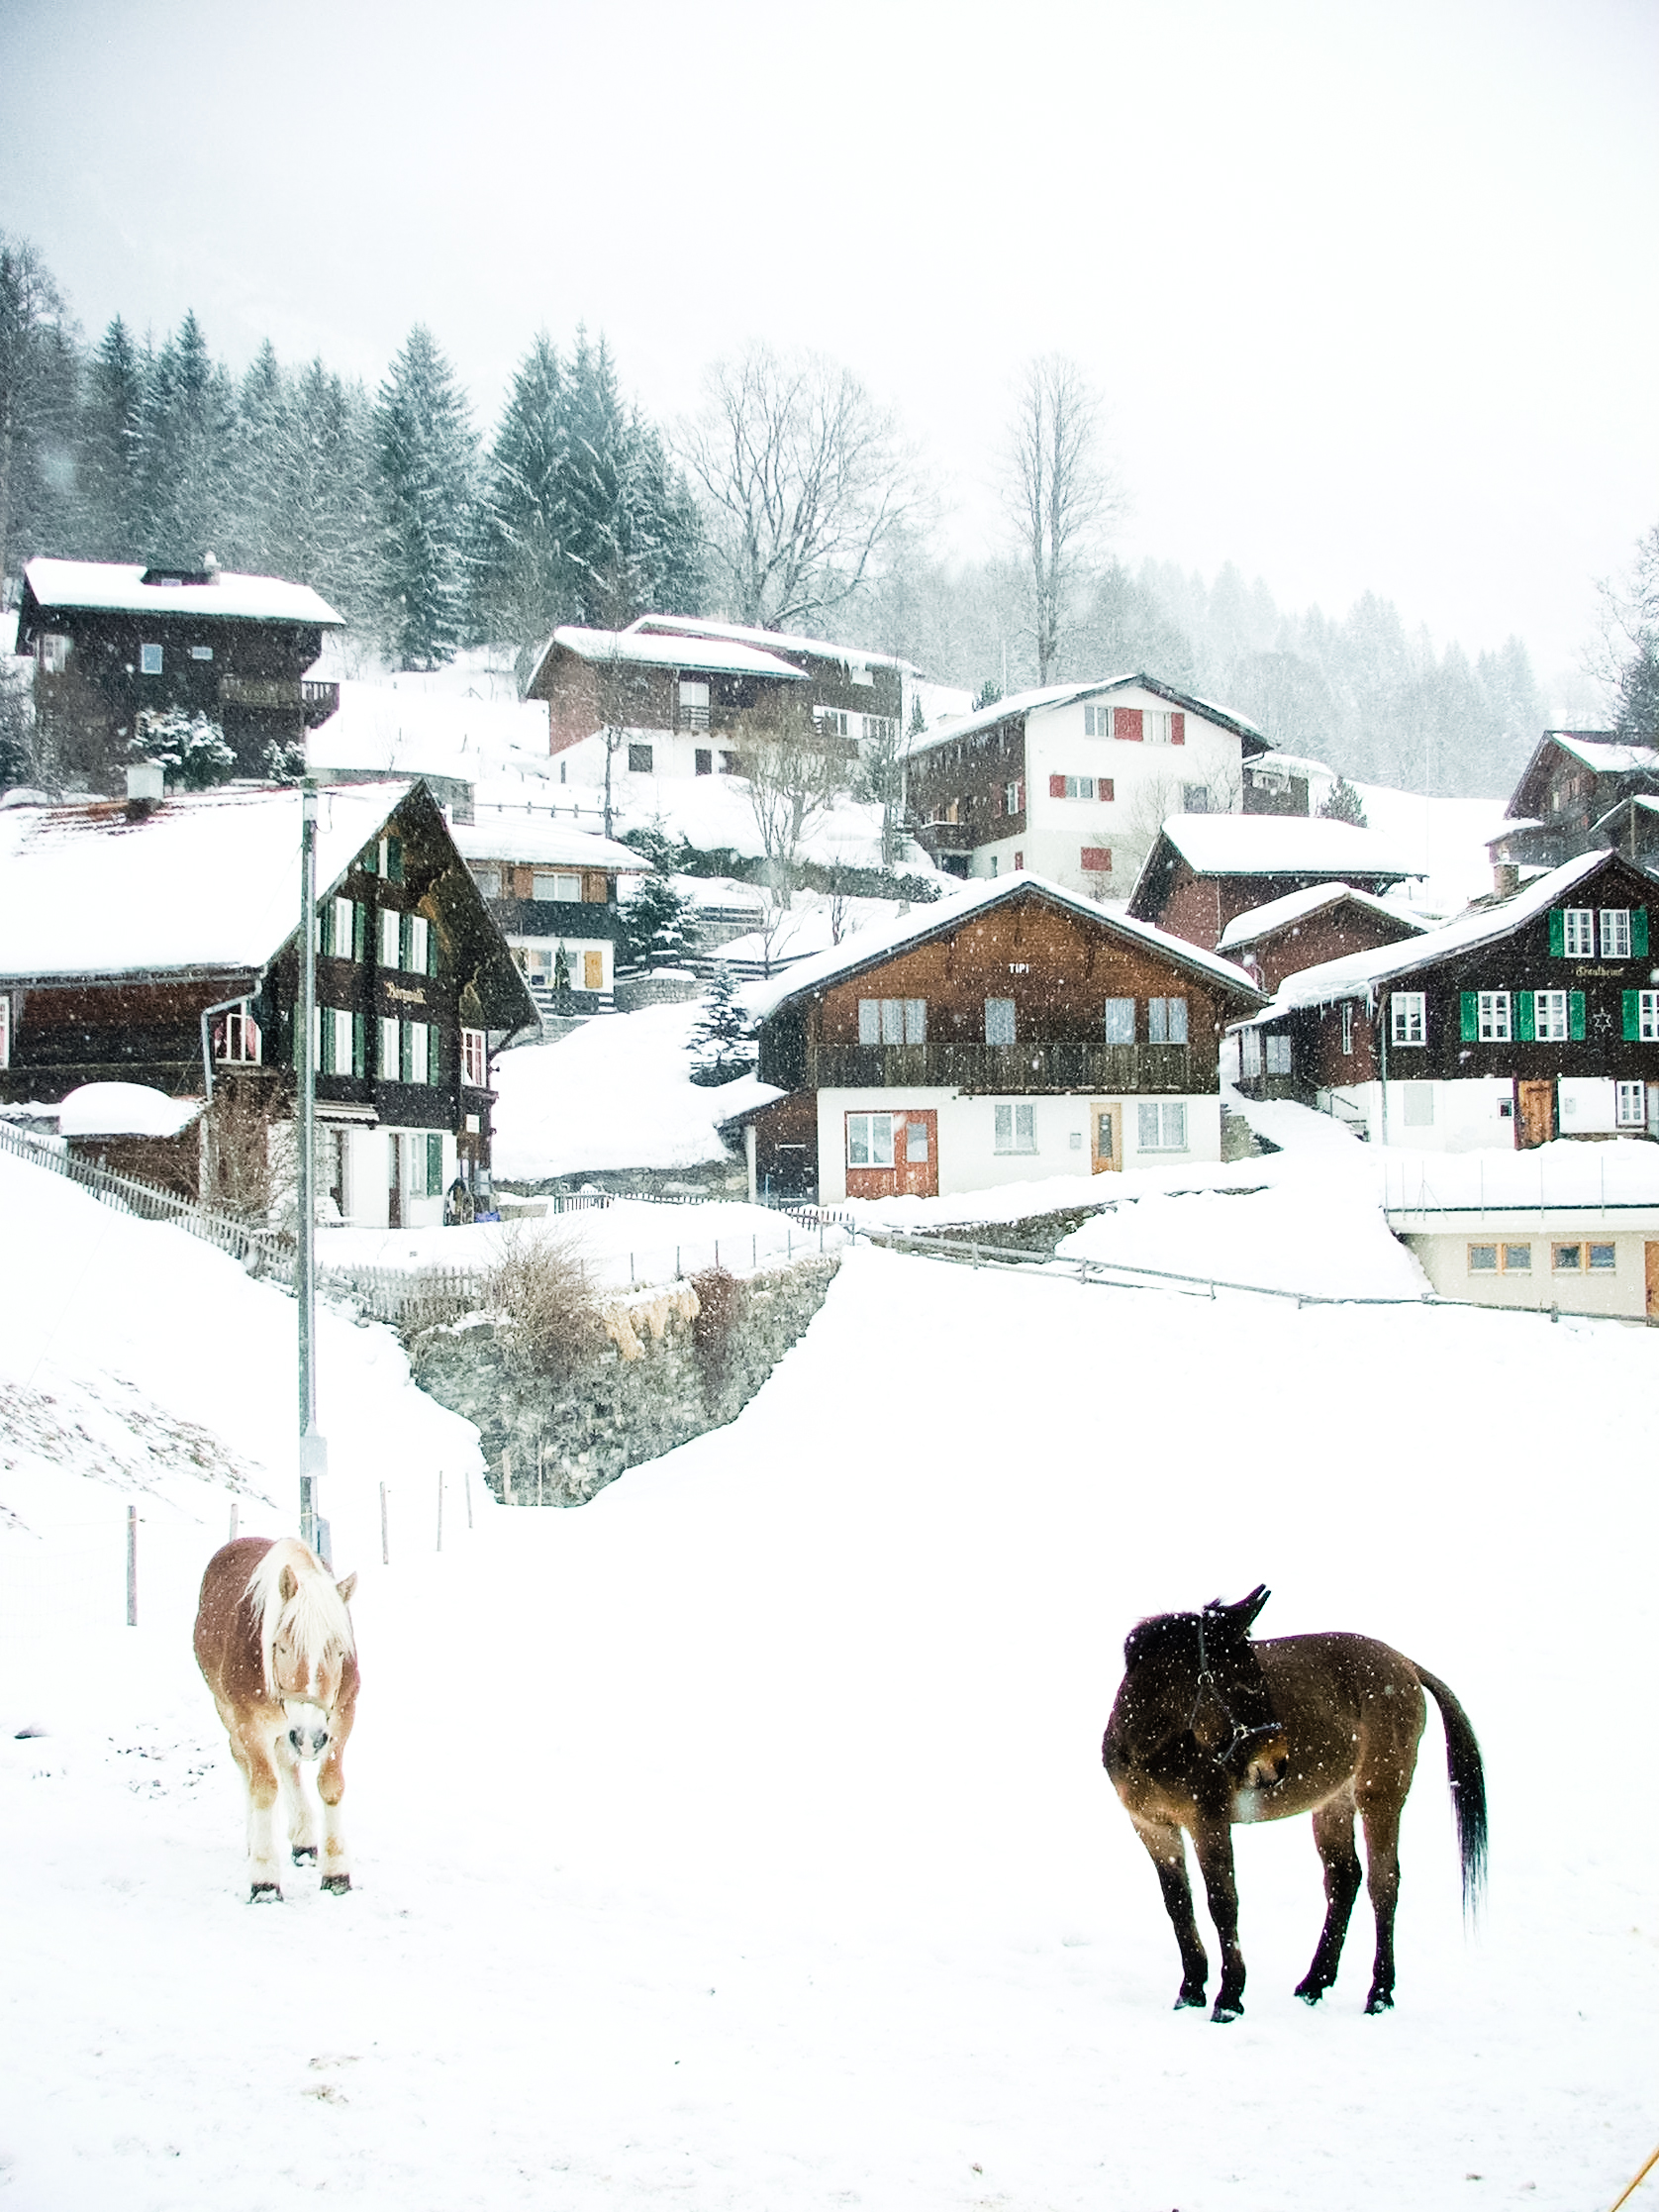 Snowy village and horses, Animal, Winter, White, Village, HQ Photo